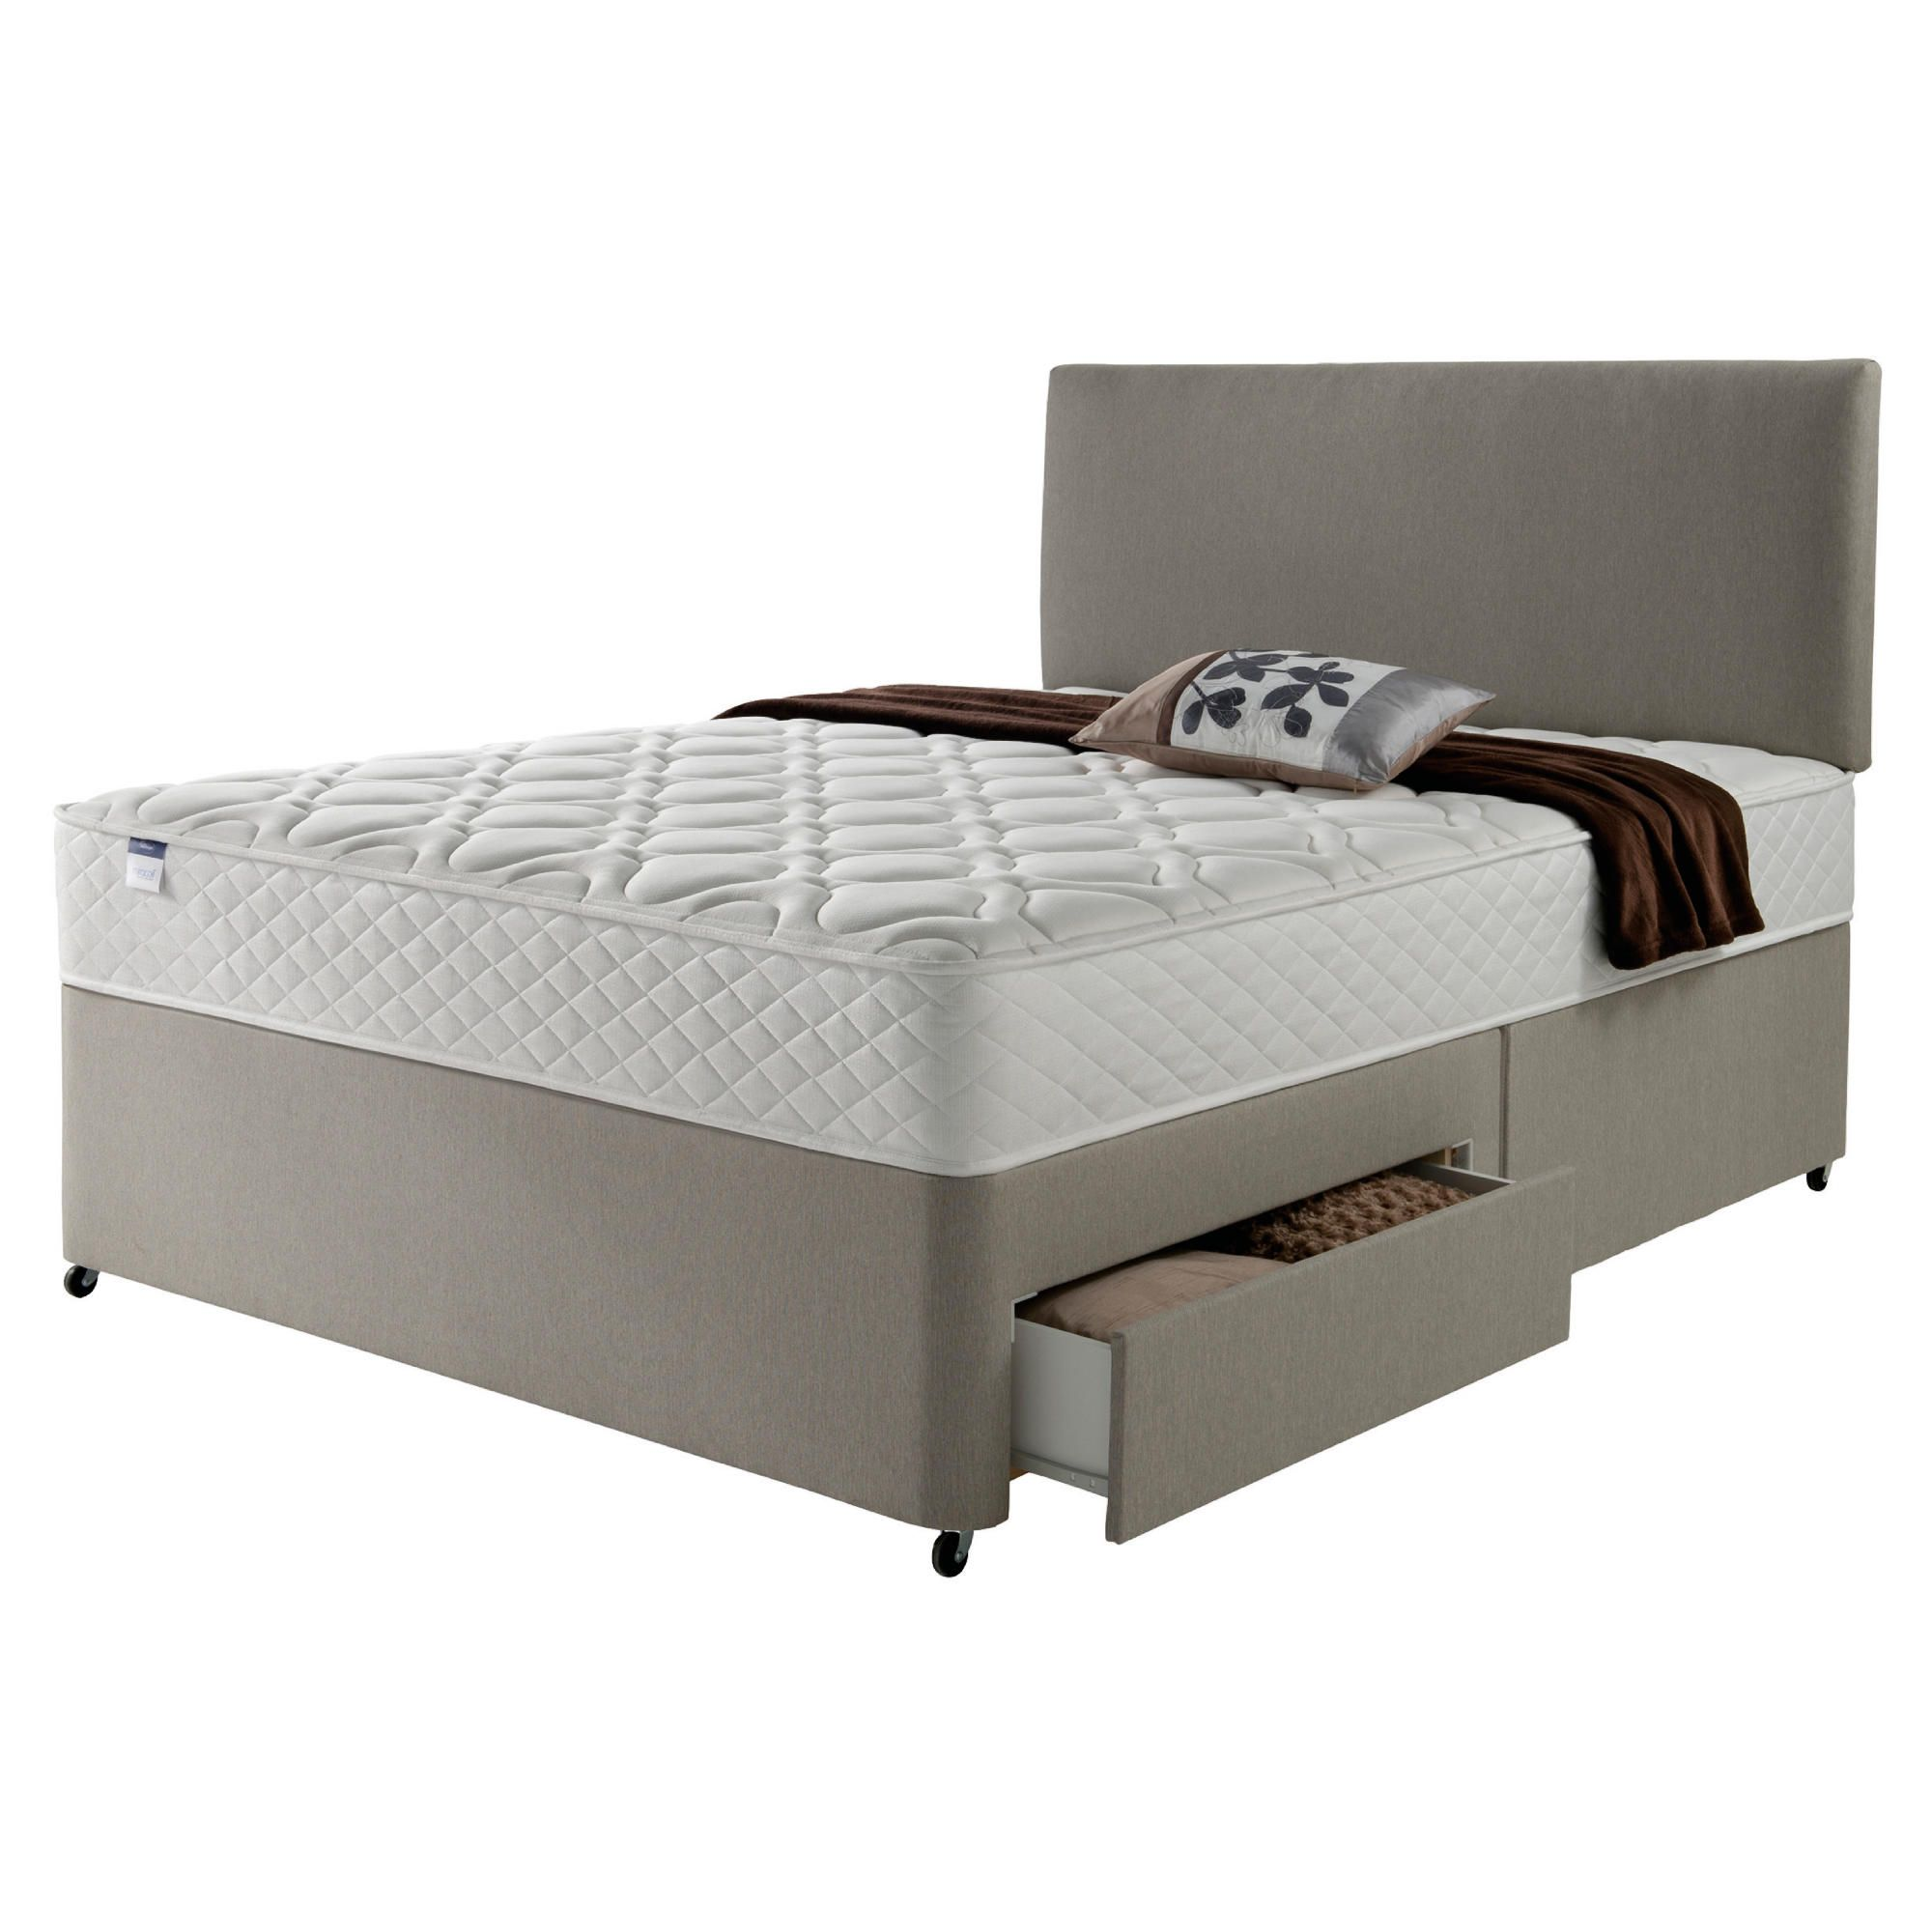 Silentnight Miracoil Luxury Micro Quilt 2 Drawer Super King Divan Mink with Headboard at Tesco Direct